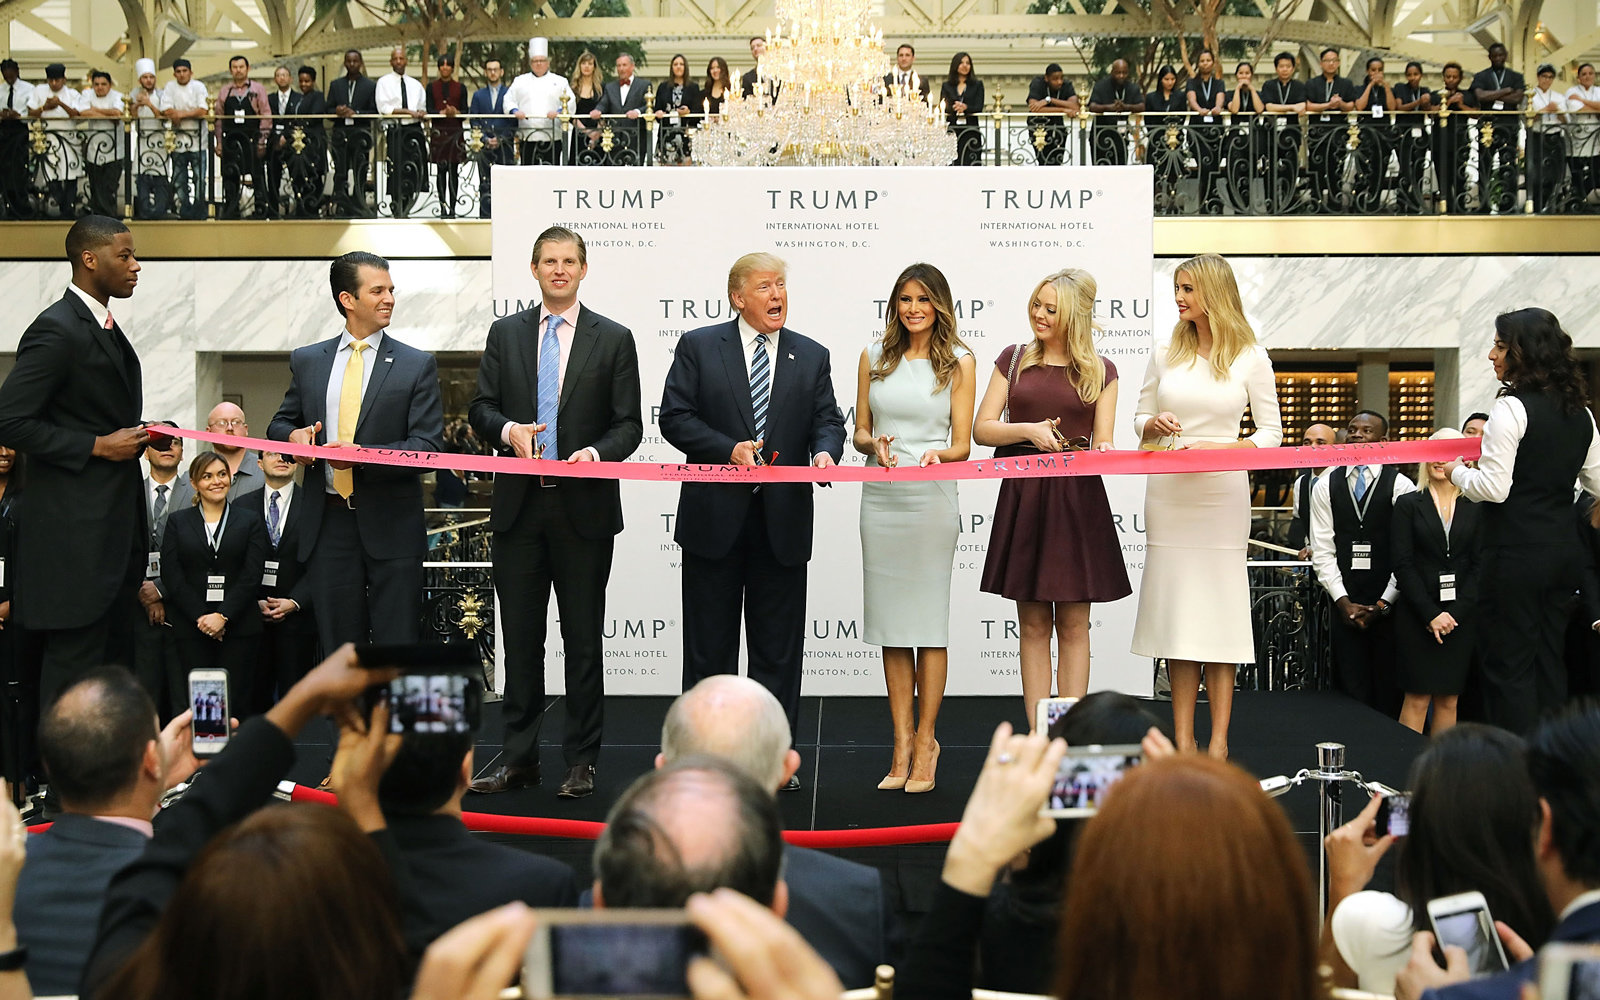 Donald Trump and his family cut the ribbon at the new Trump International Hotel Oct. 26, 2016 in Washington, D.C.